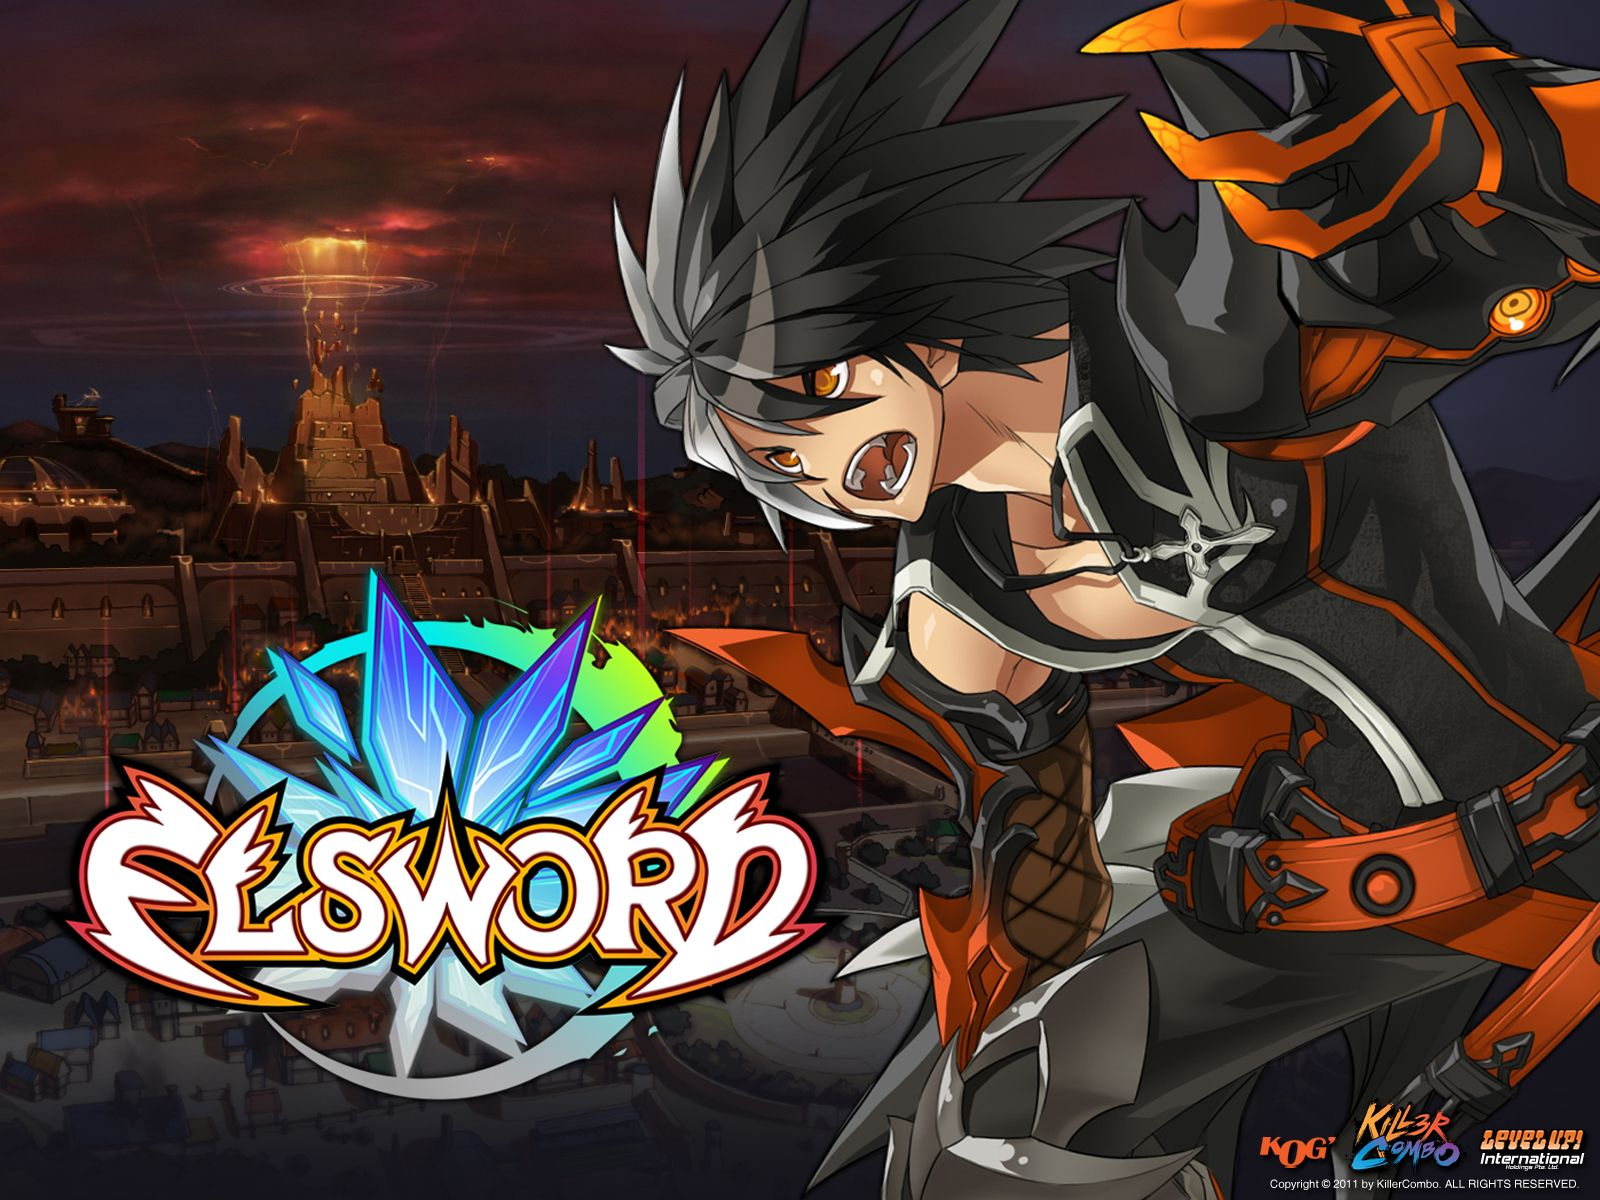 Lu elsword hd wallpapers backgrounds wallpaper 3d wallpapers lu elsword hd wallpapers backgrounds wallpaper voltagebd